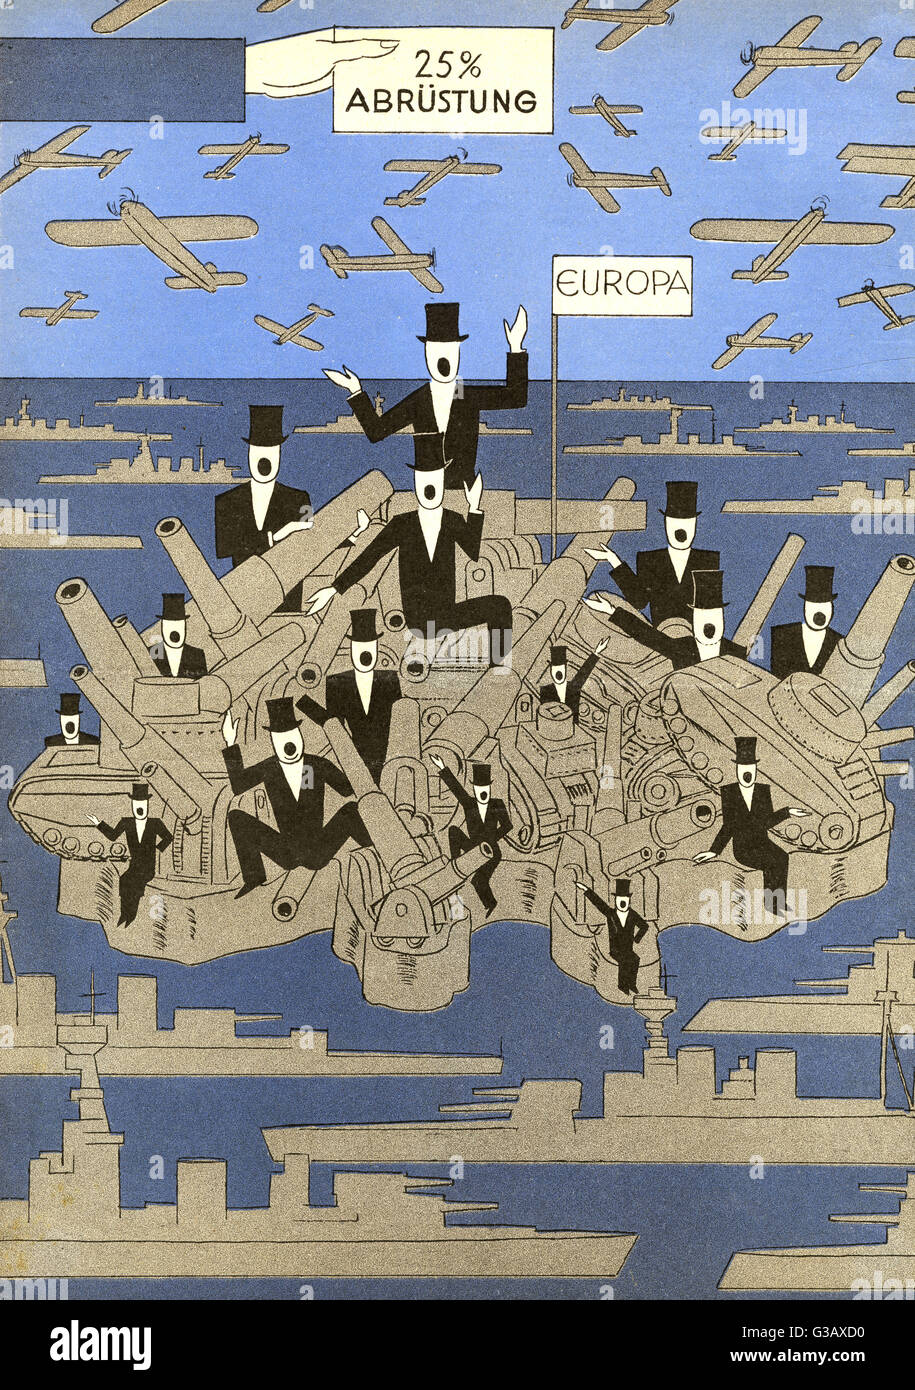 Armed Europe can't see its way  to making even a 25% cutback  in armaments        Date: 1932 - Stock Image